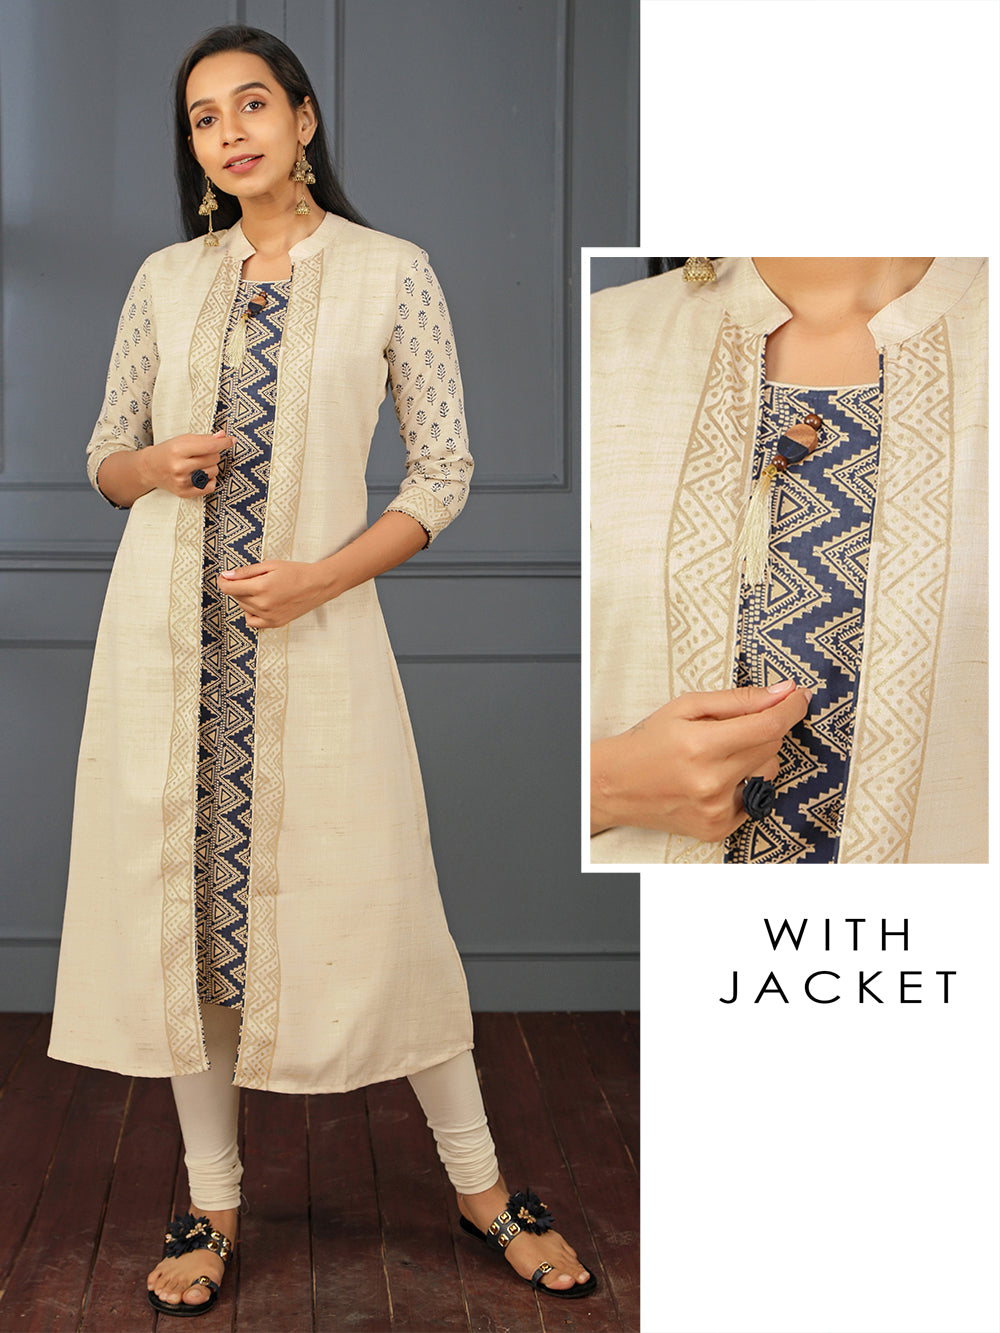 Chevron Printed Long Kurti Attached with Foil Printed Jacket